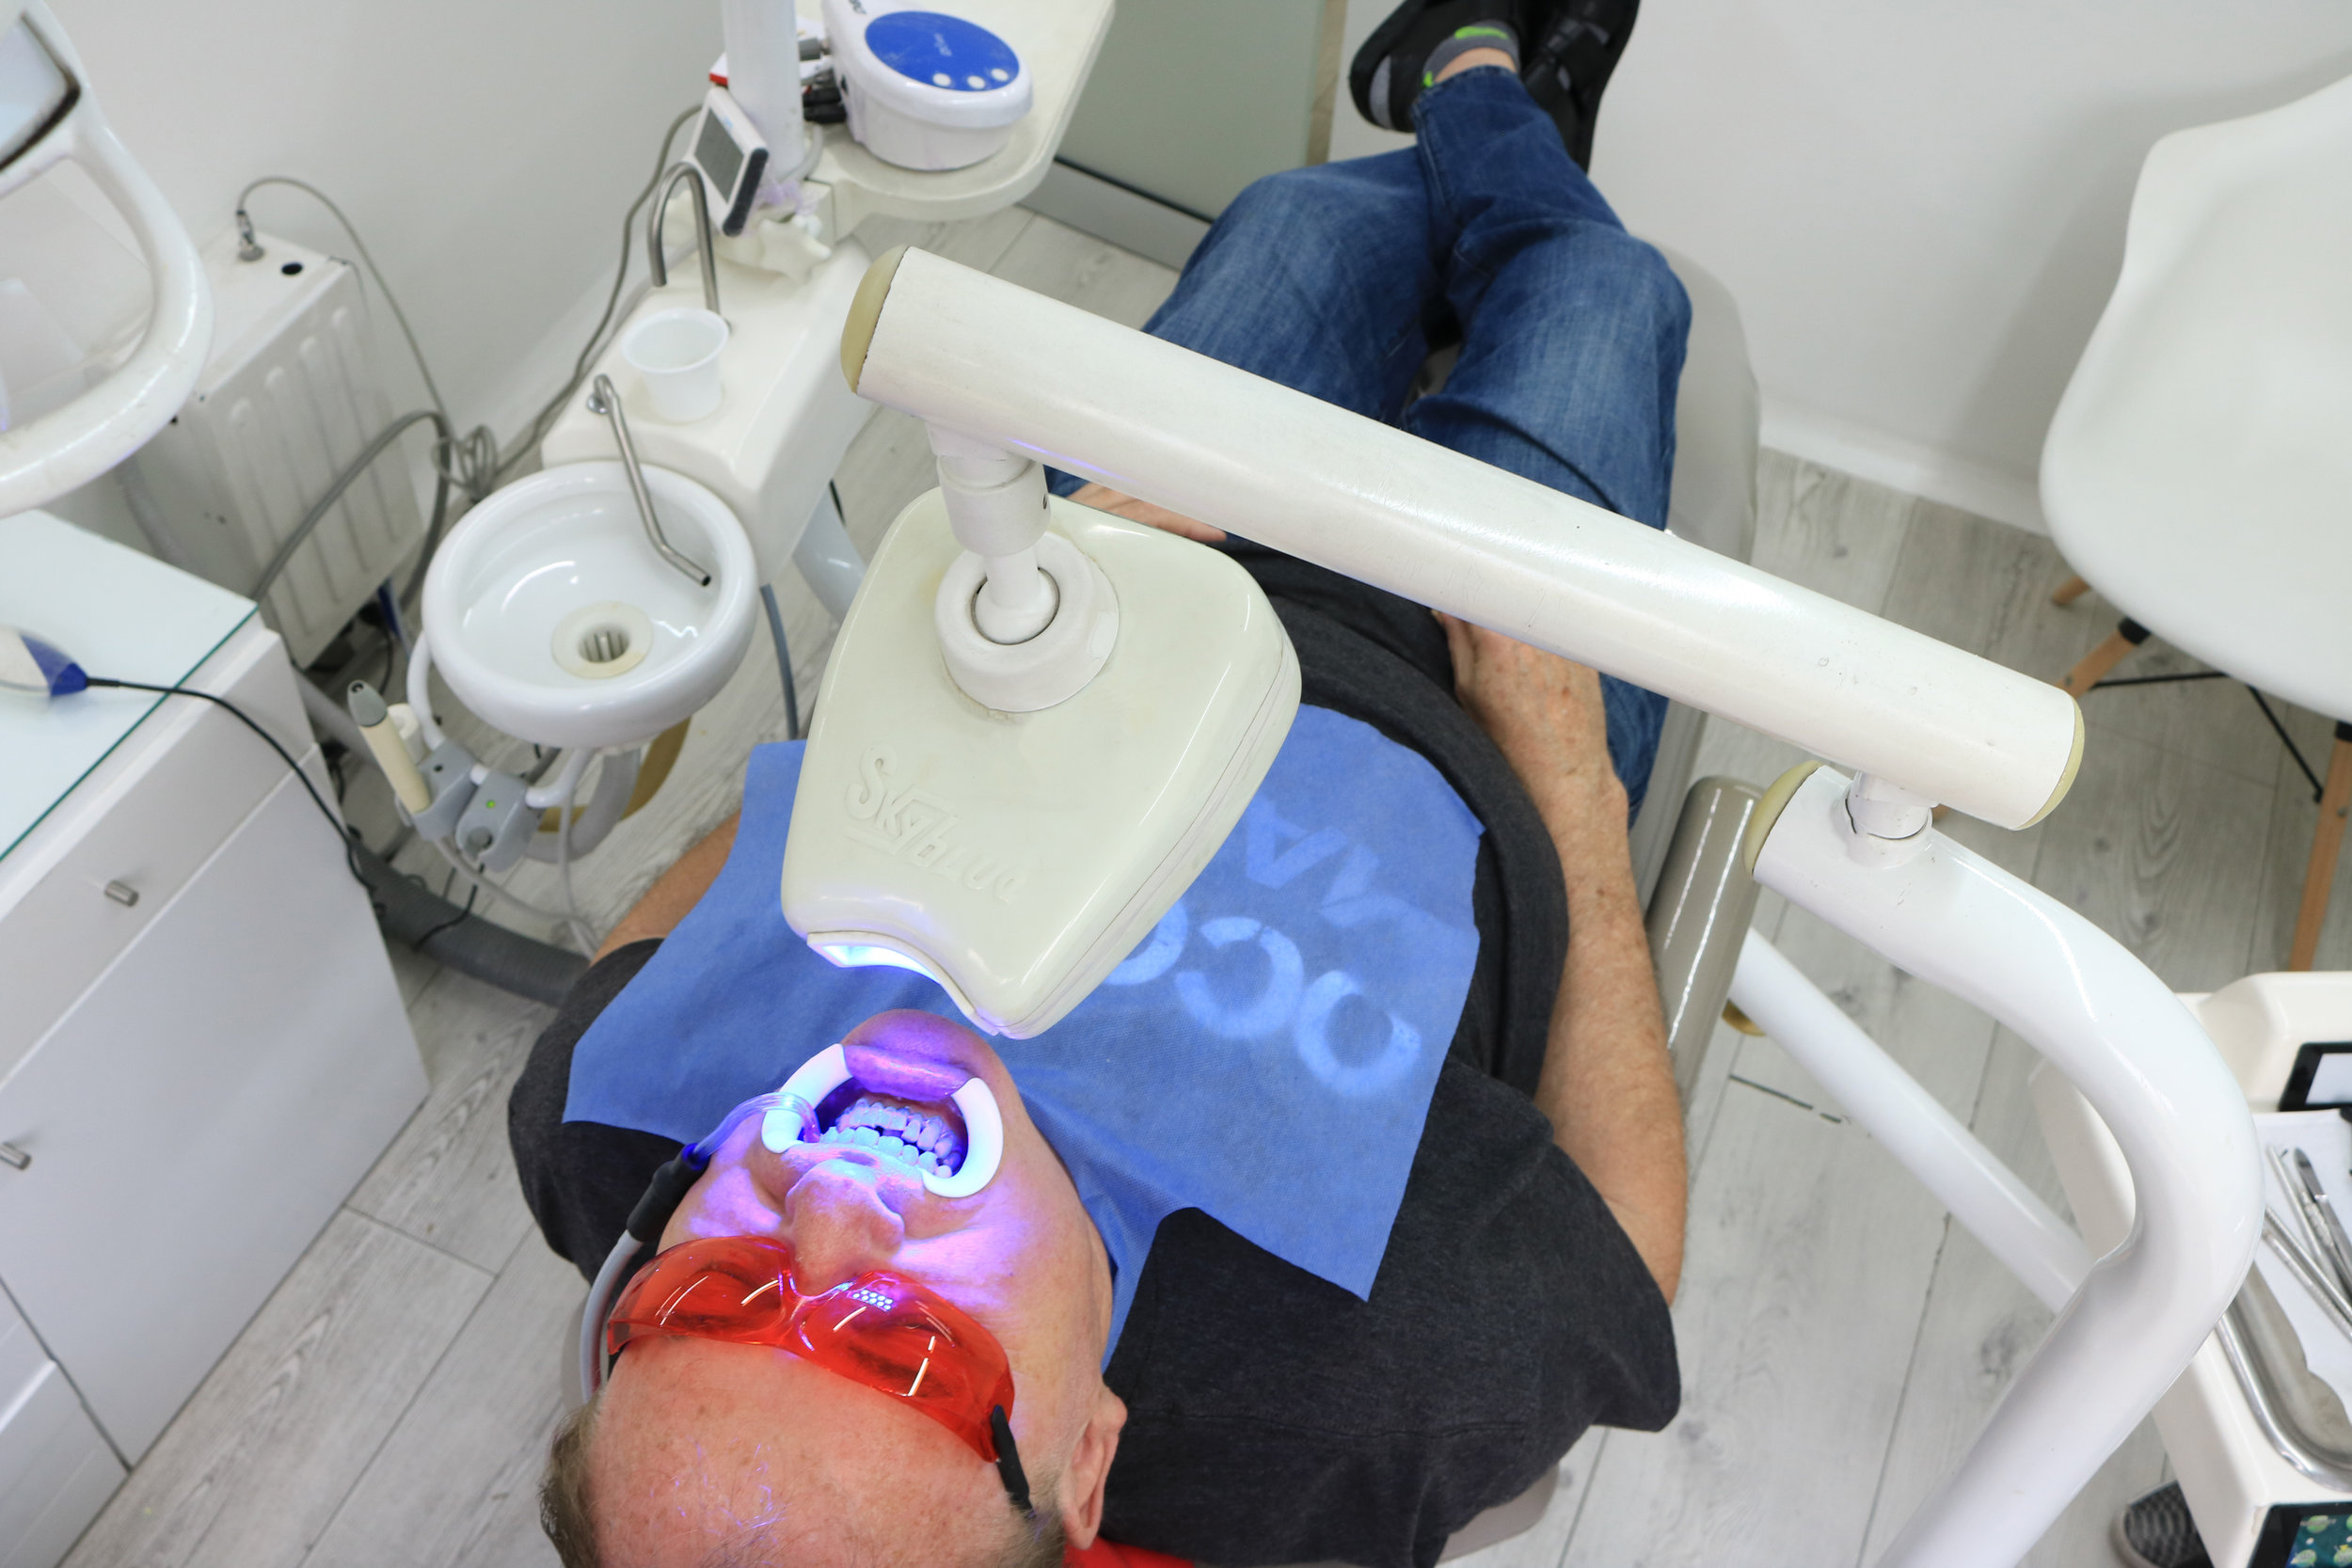 How much does teeth whitening in Medellin, Colombia cost? - Dr. Johana Ossa